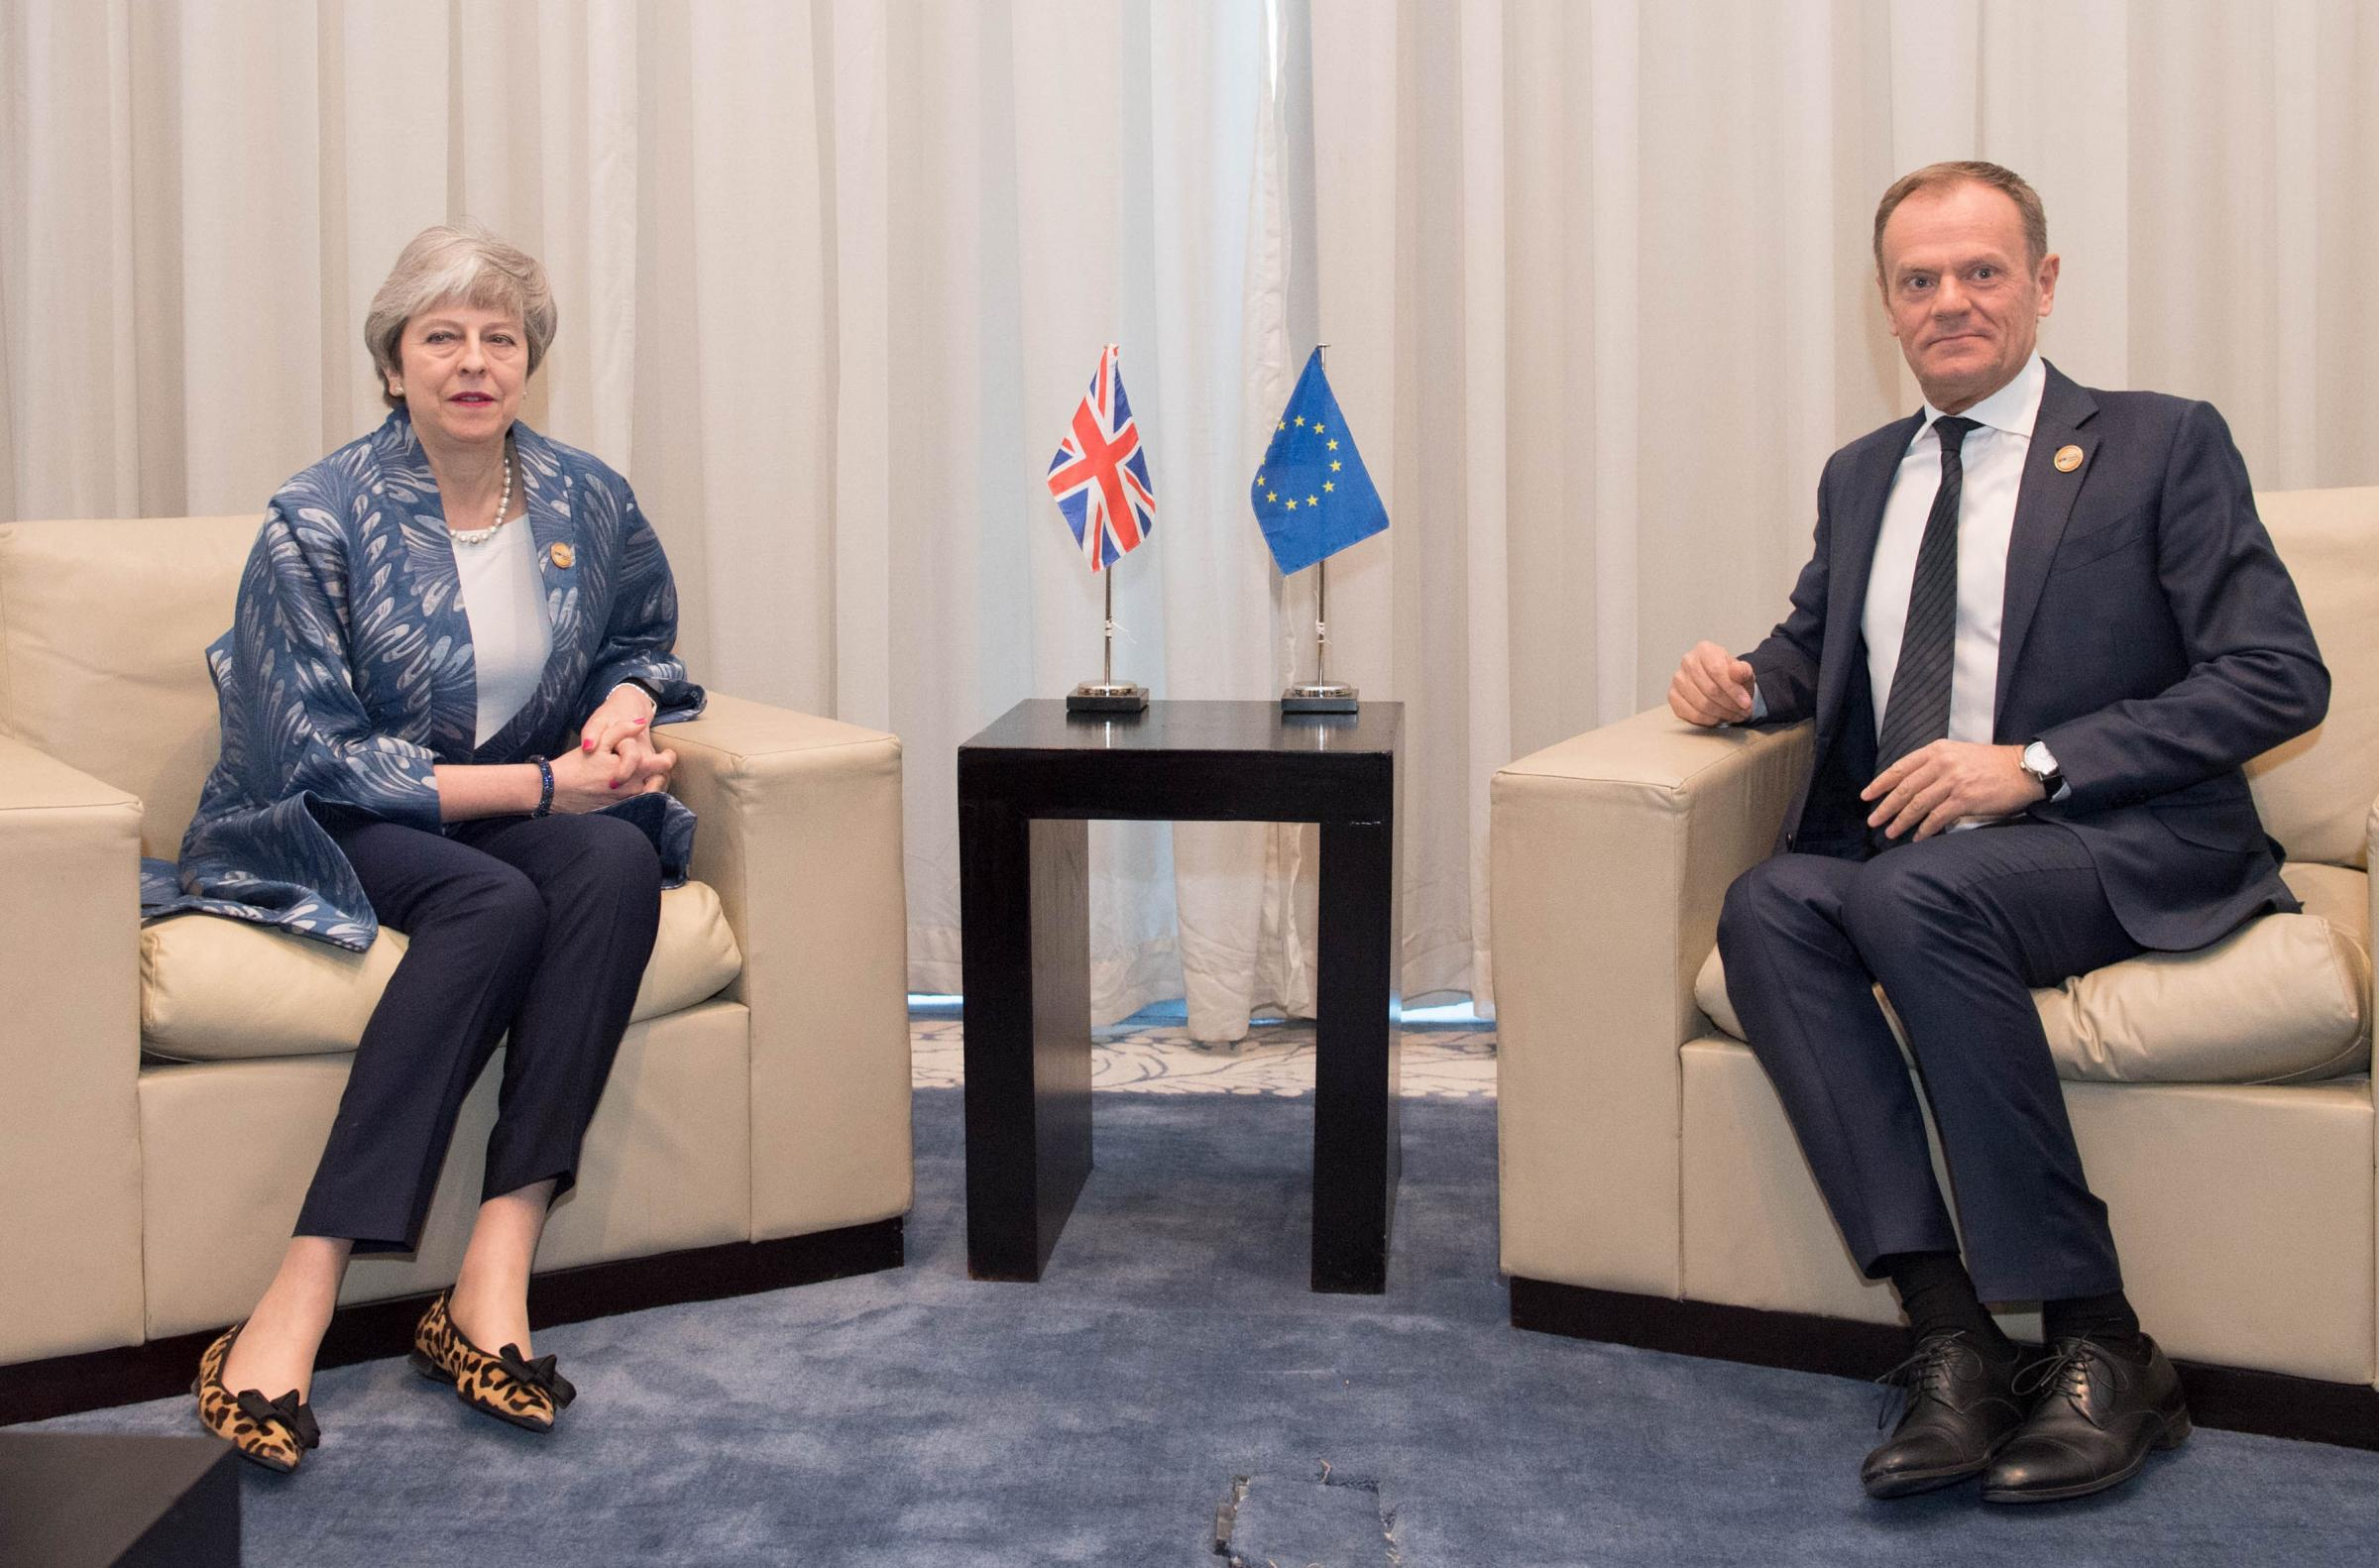 Theresa May, who is hoping to delay Brexit until June 30, and EU Council president Donald Tusk